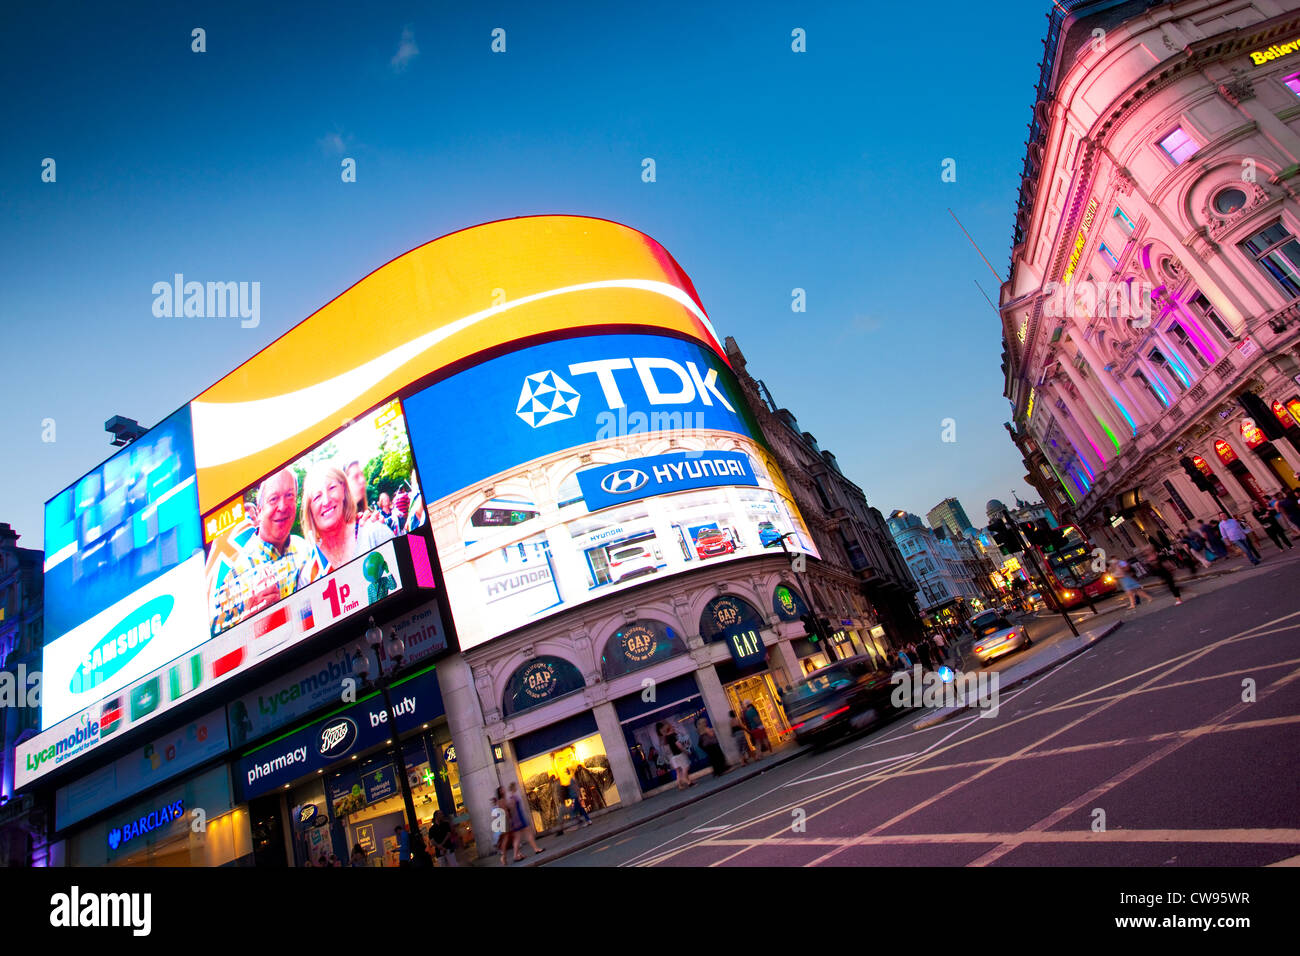 Piccadilly Circus, Central London, England, United Kingdom - Stock Image